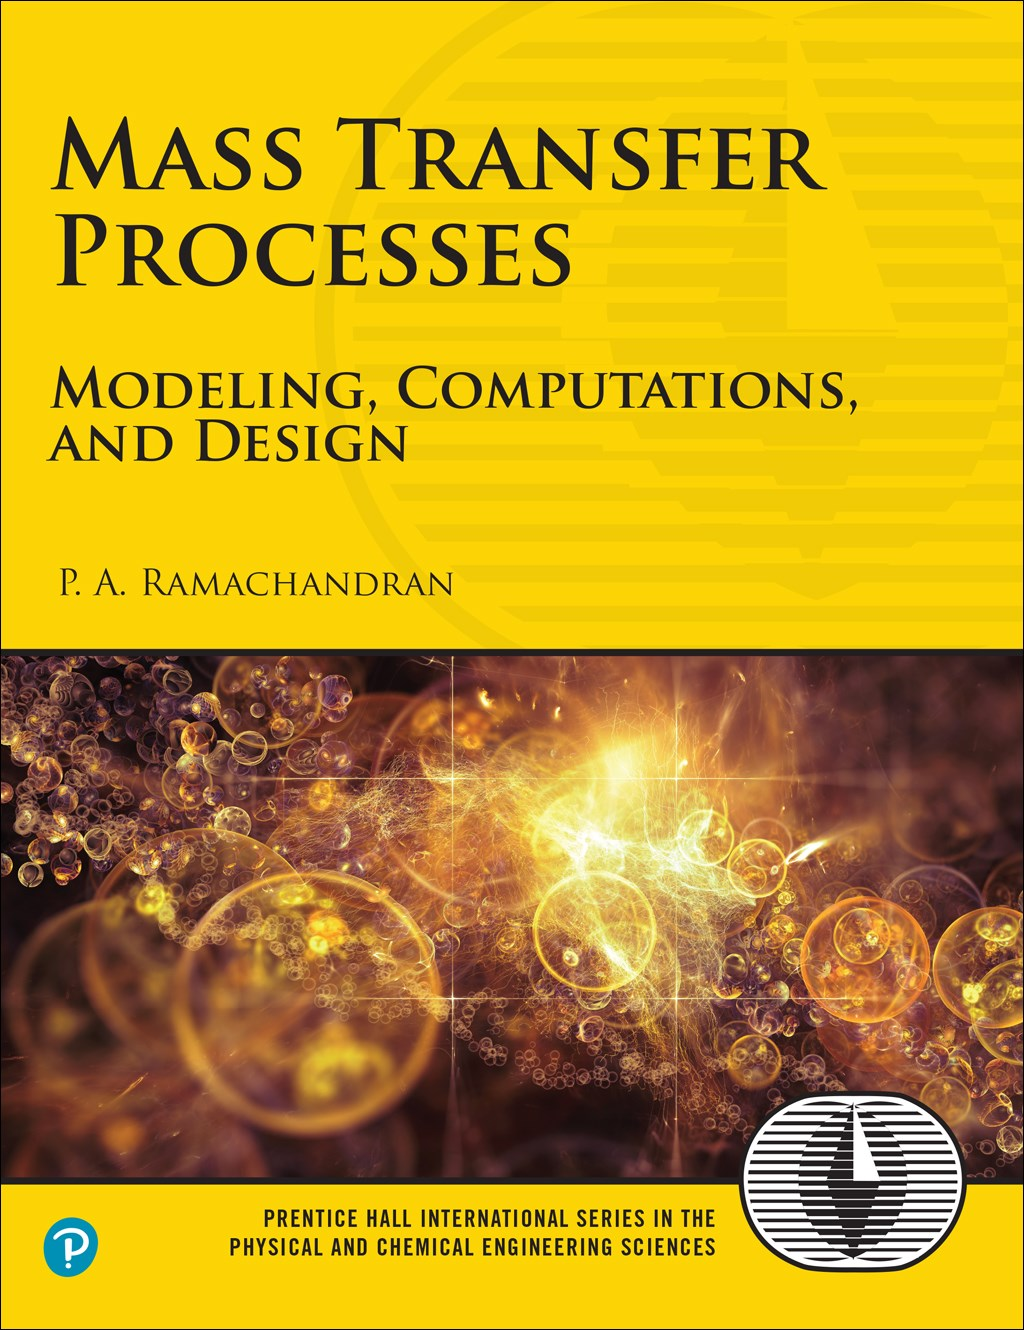 Mass Transfer Processes: Modeling, Computations, and Design